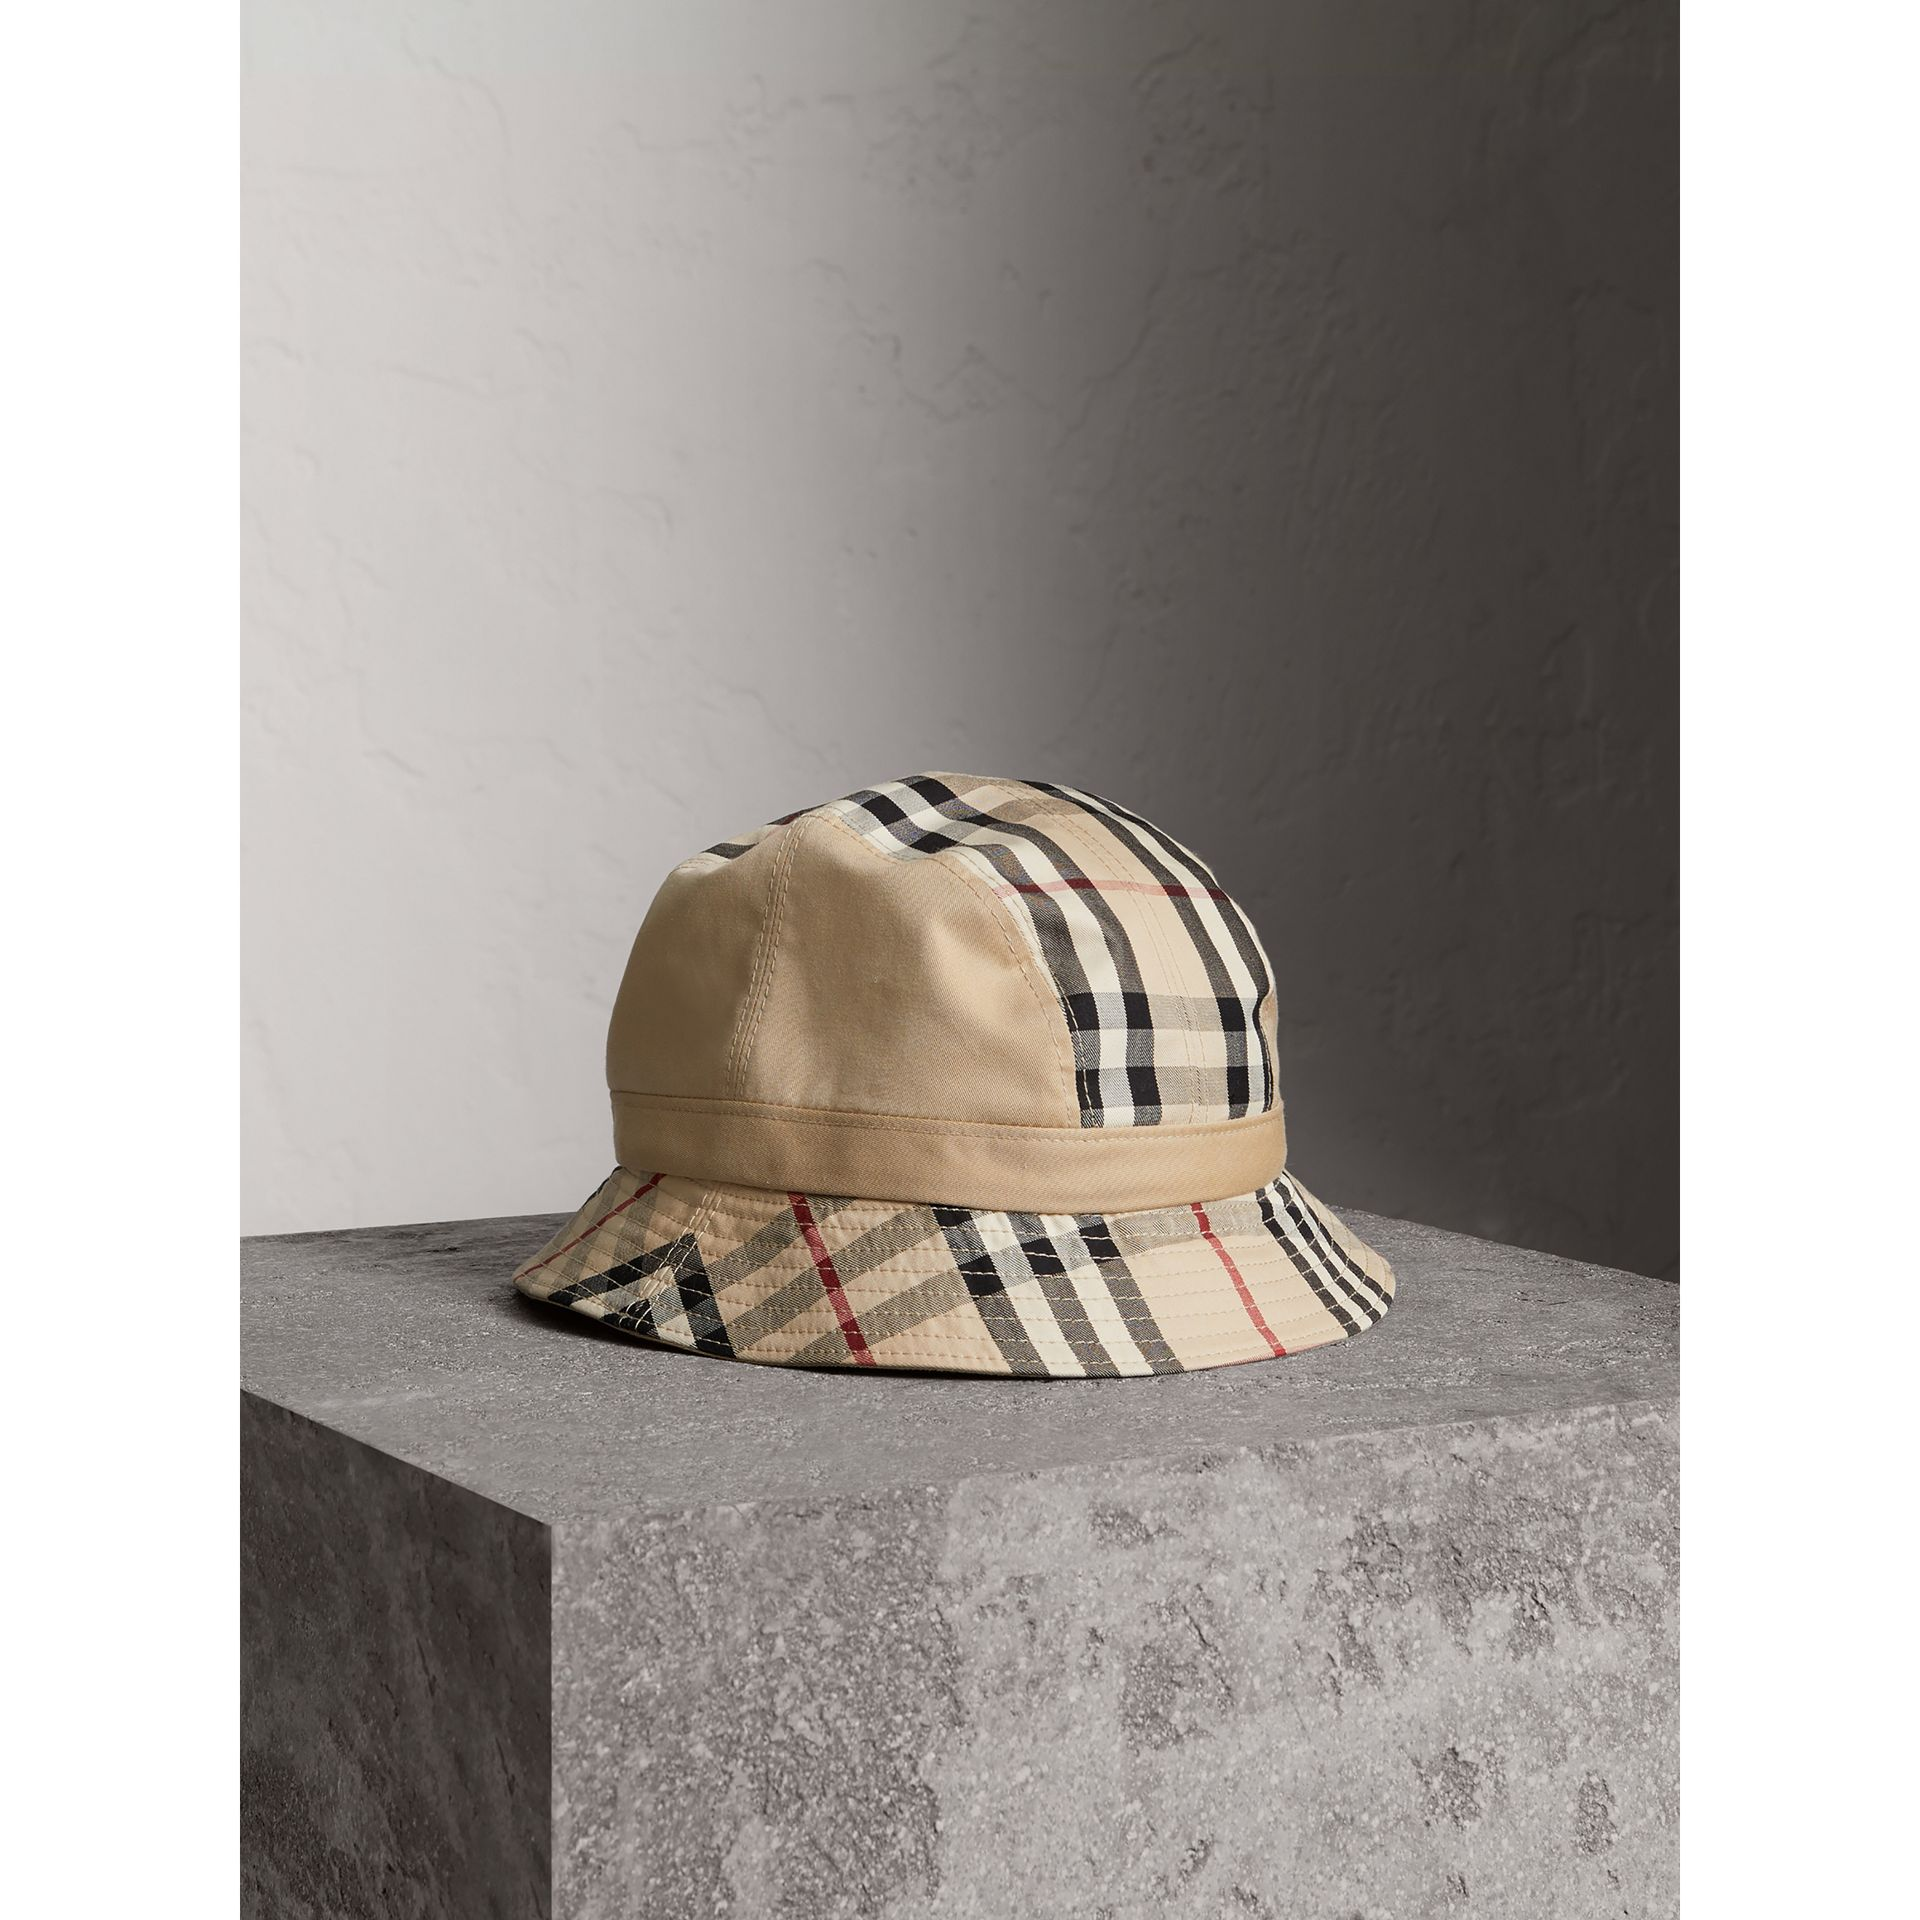 Gosha x Burberry Bucket Hat in Honey | Burberry - gallery image 1